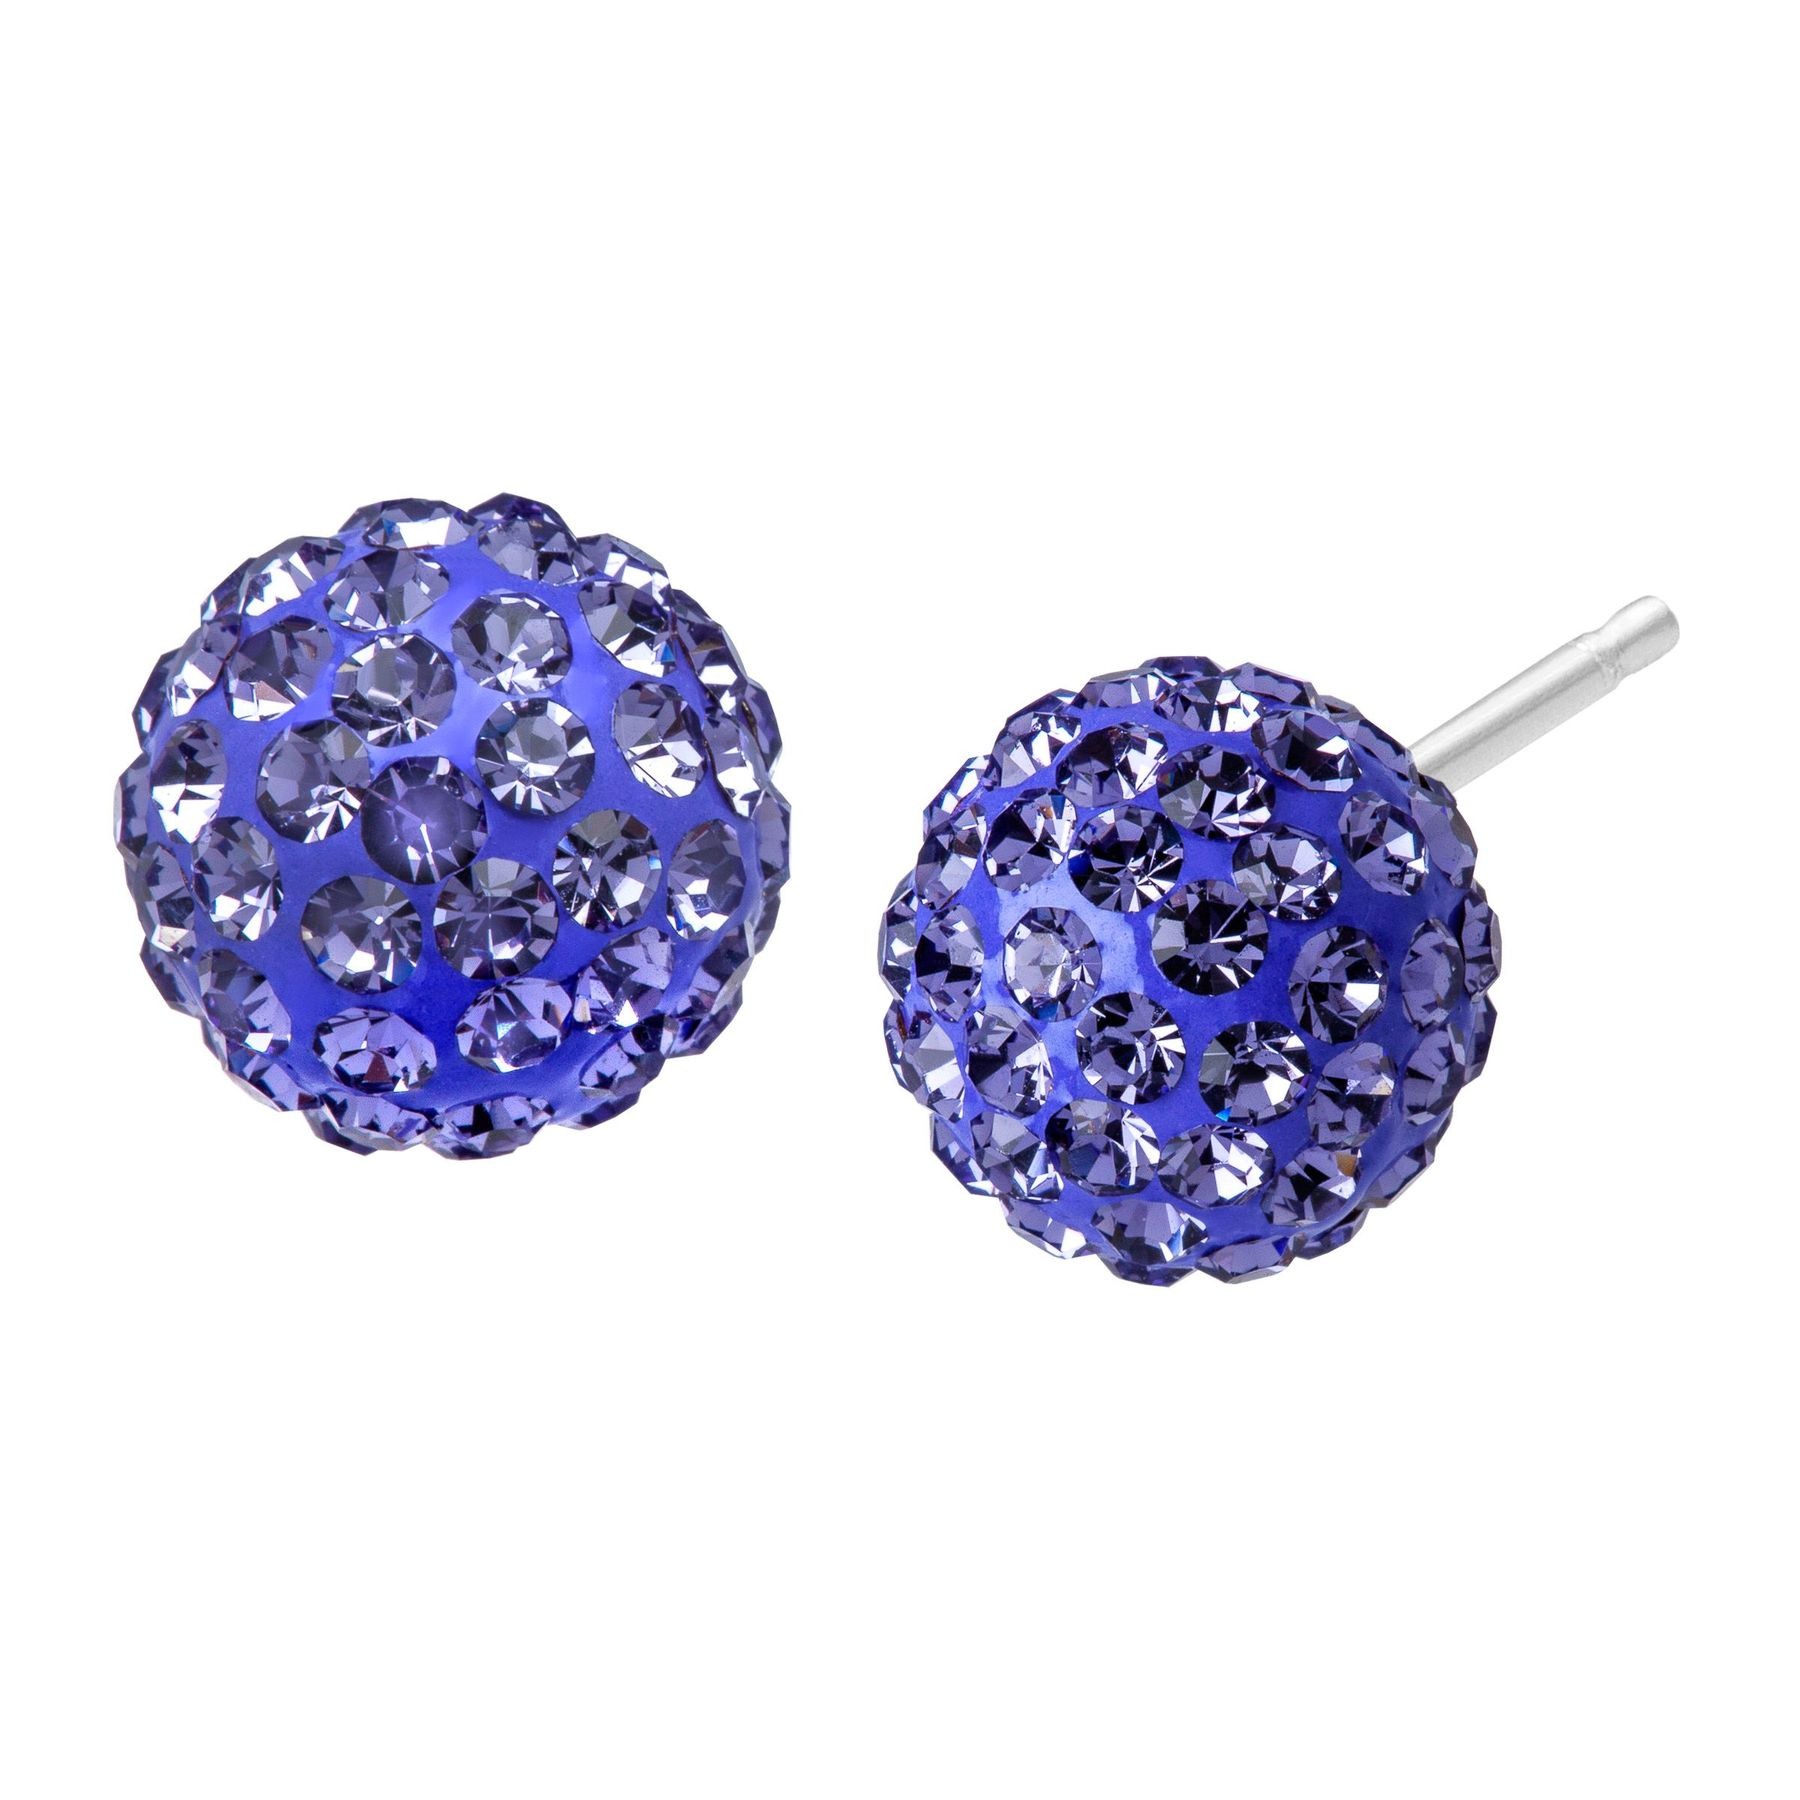 Stud Earrings With Purple Swarovski Crystal